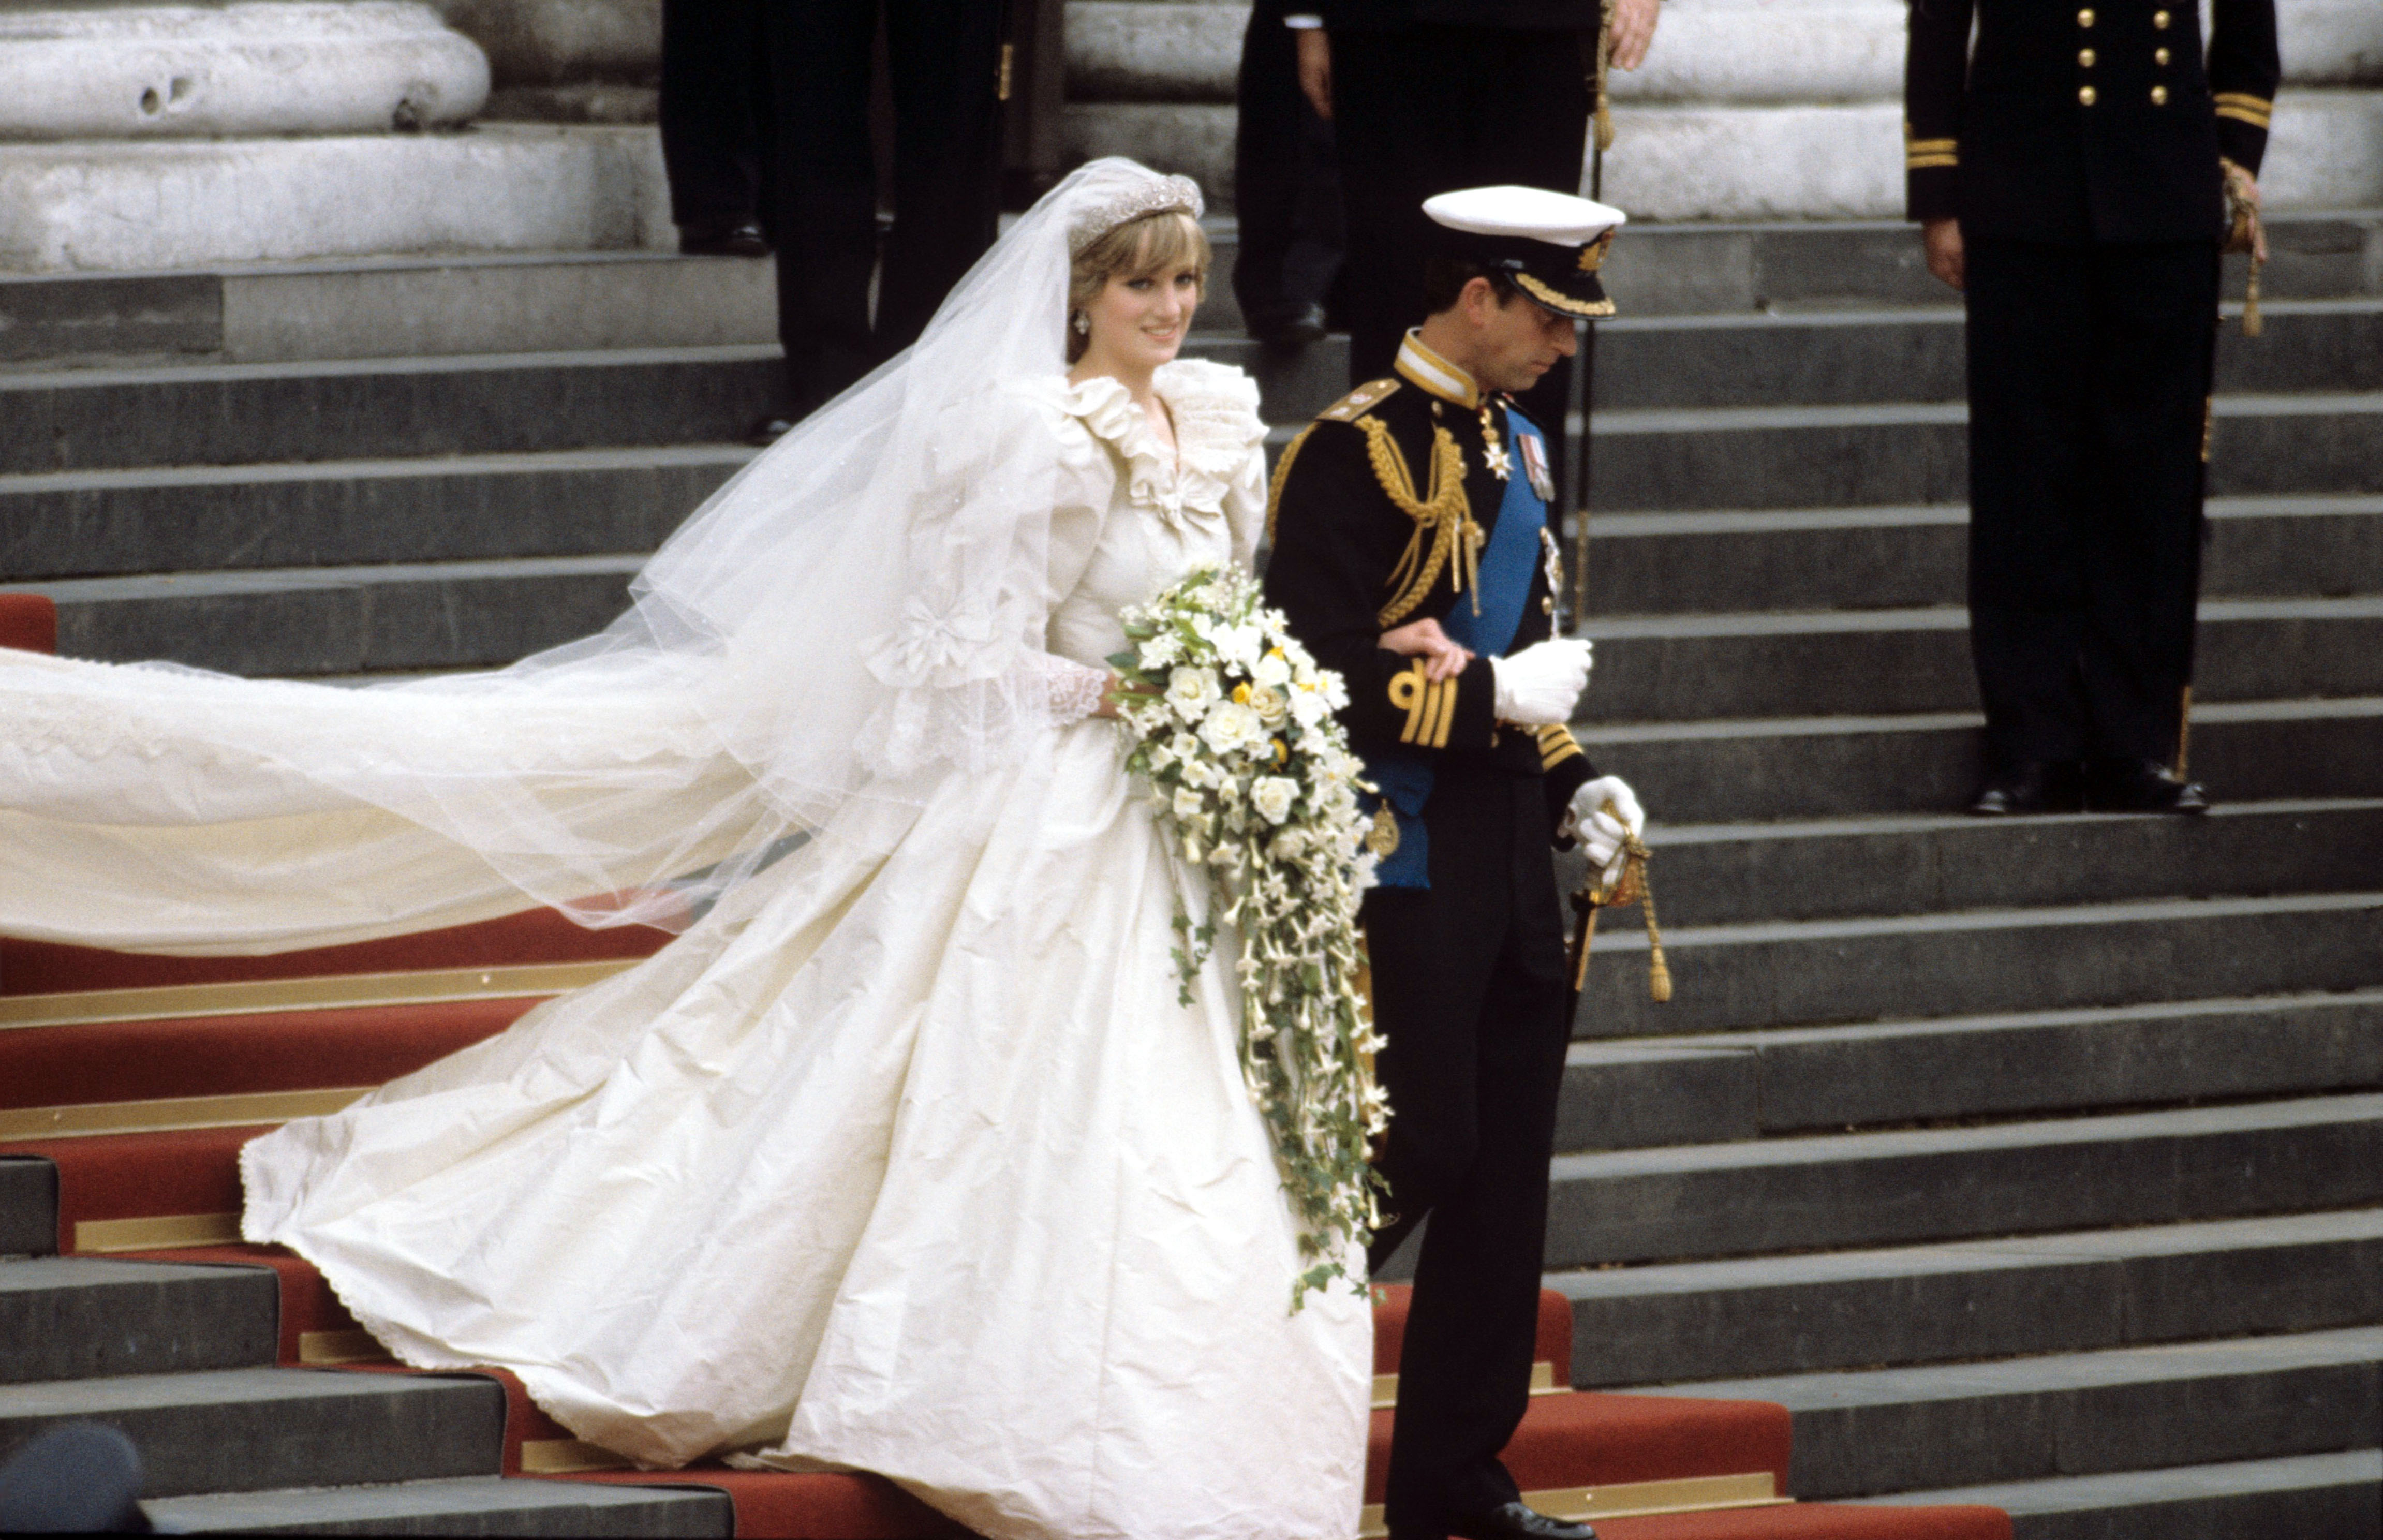 Princess Diana and Prince Charles walking down the steps of St. Pauls cathedralWedding of Prince Charles and Lady Diana Spencer, London, Britain - 29 Jul 1981